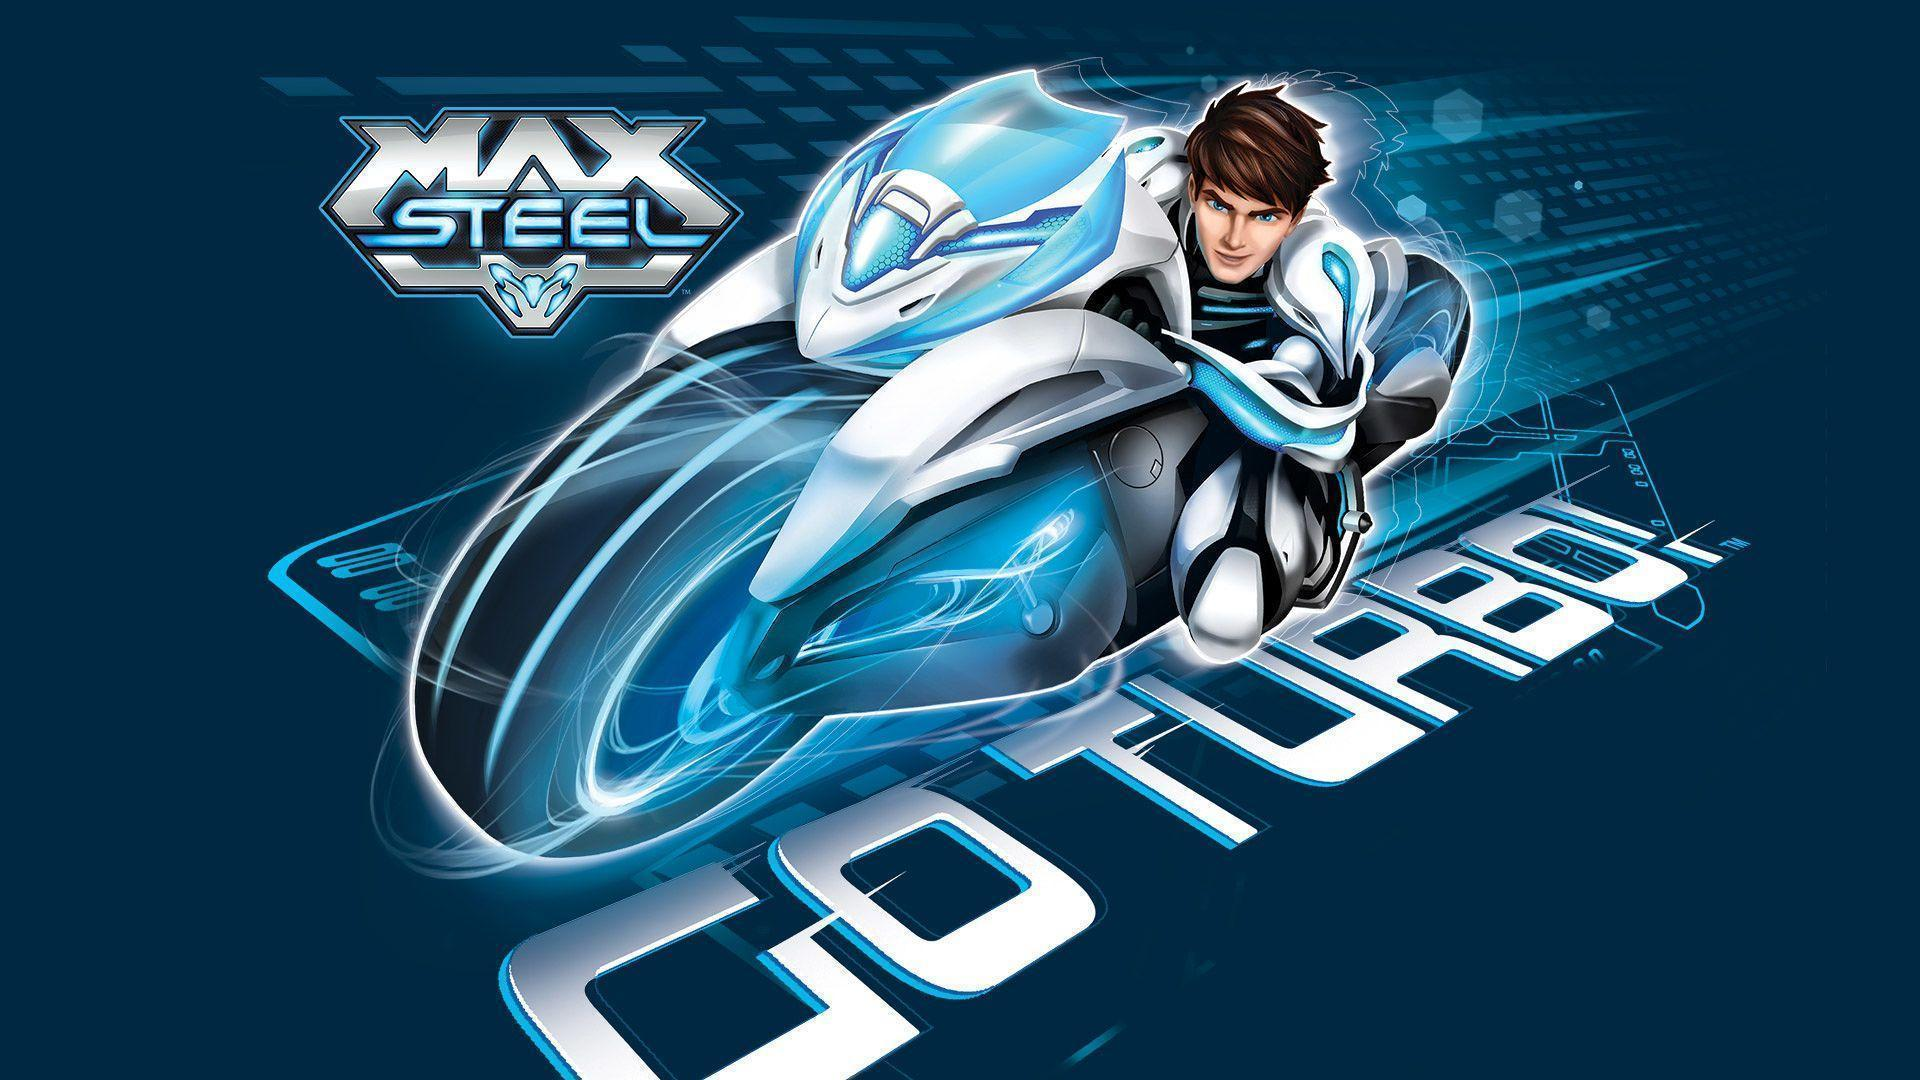 It's just a picture of Decisive Max Steel Pictures